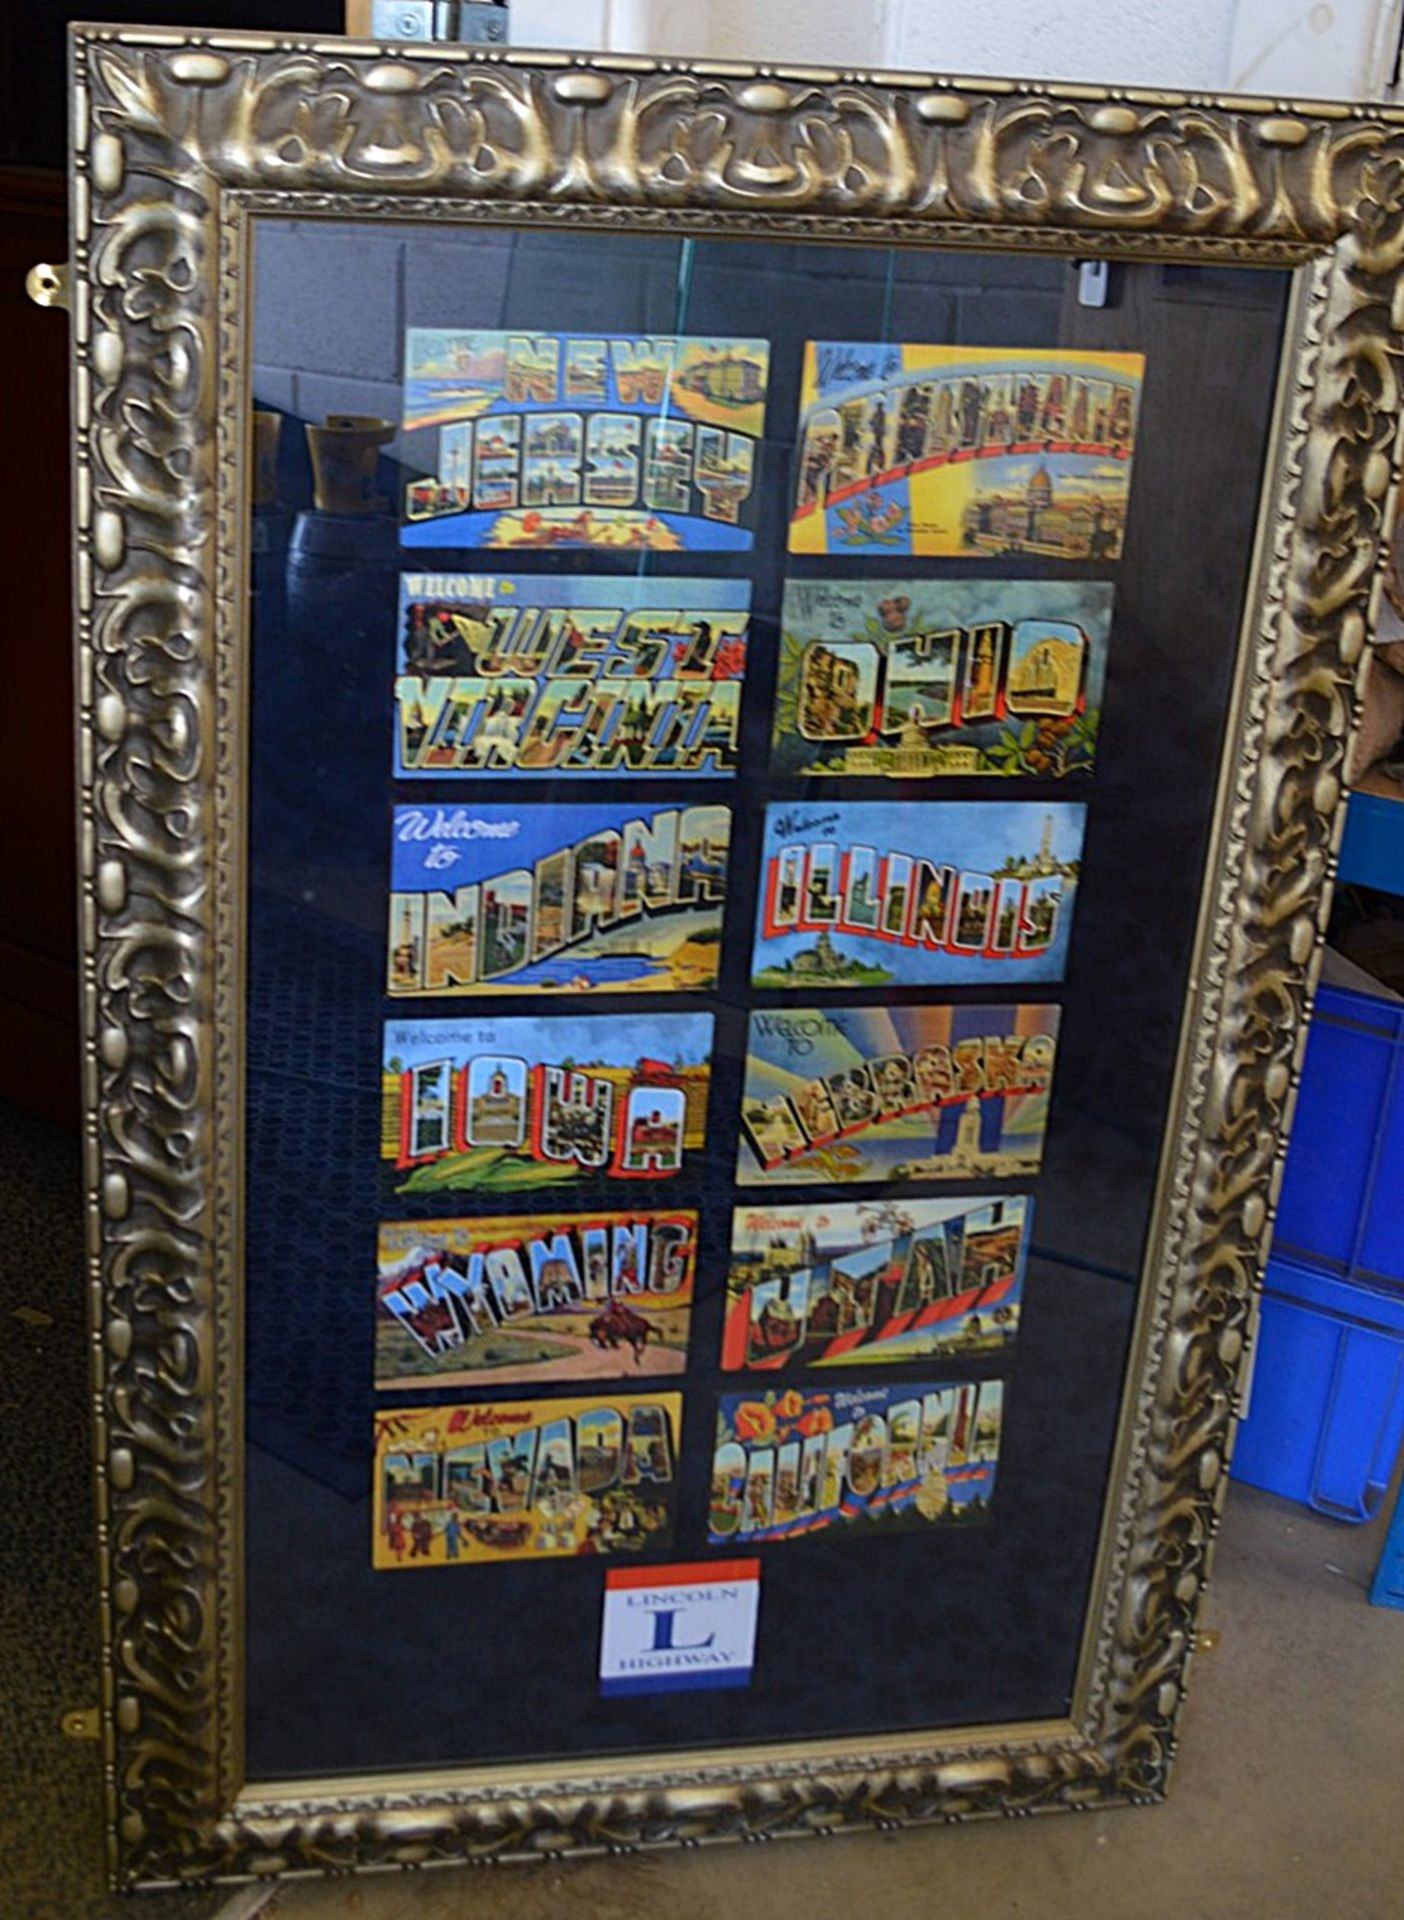 Lot 7508 - 1 x Framed Display Piece Featuring Facsimiles Of Bygone Postcards - Dimensions: H107 x W68cm - Used,